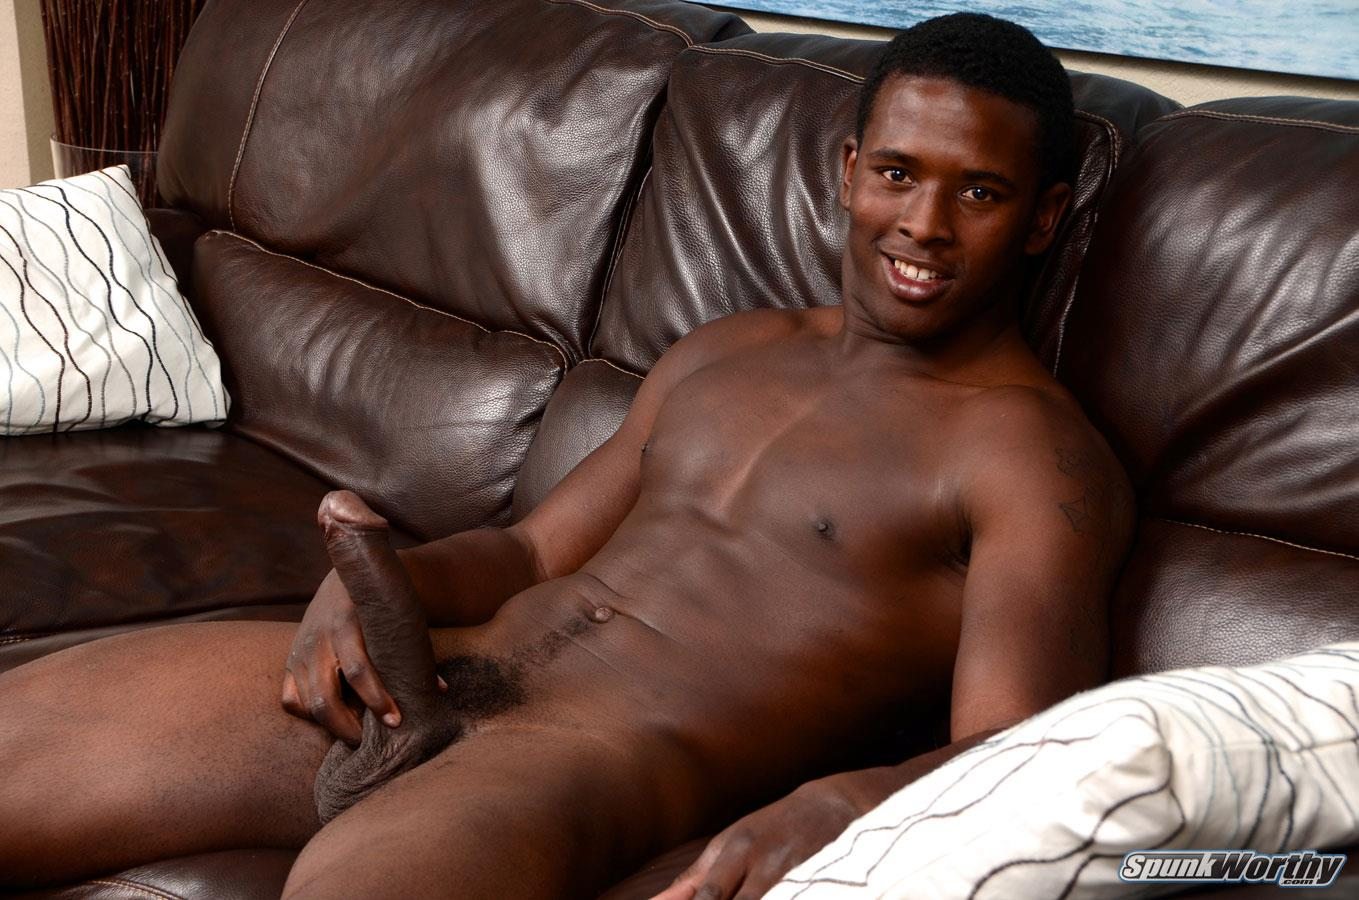 Black villages gay porn images and black